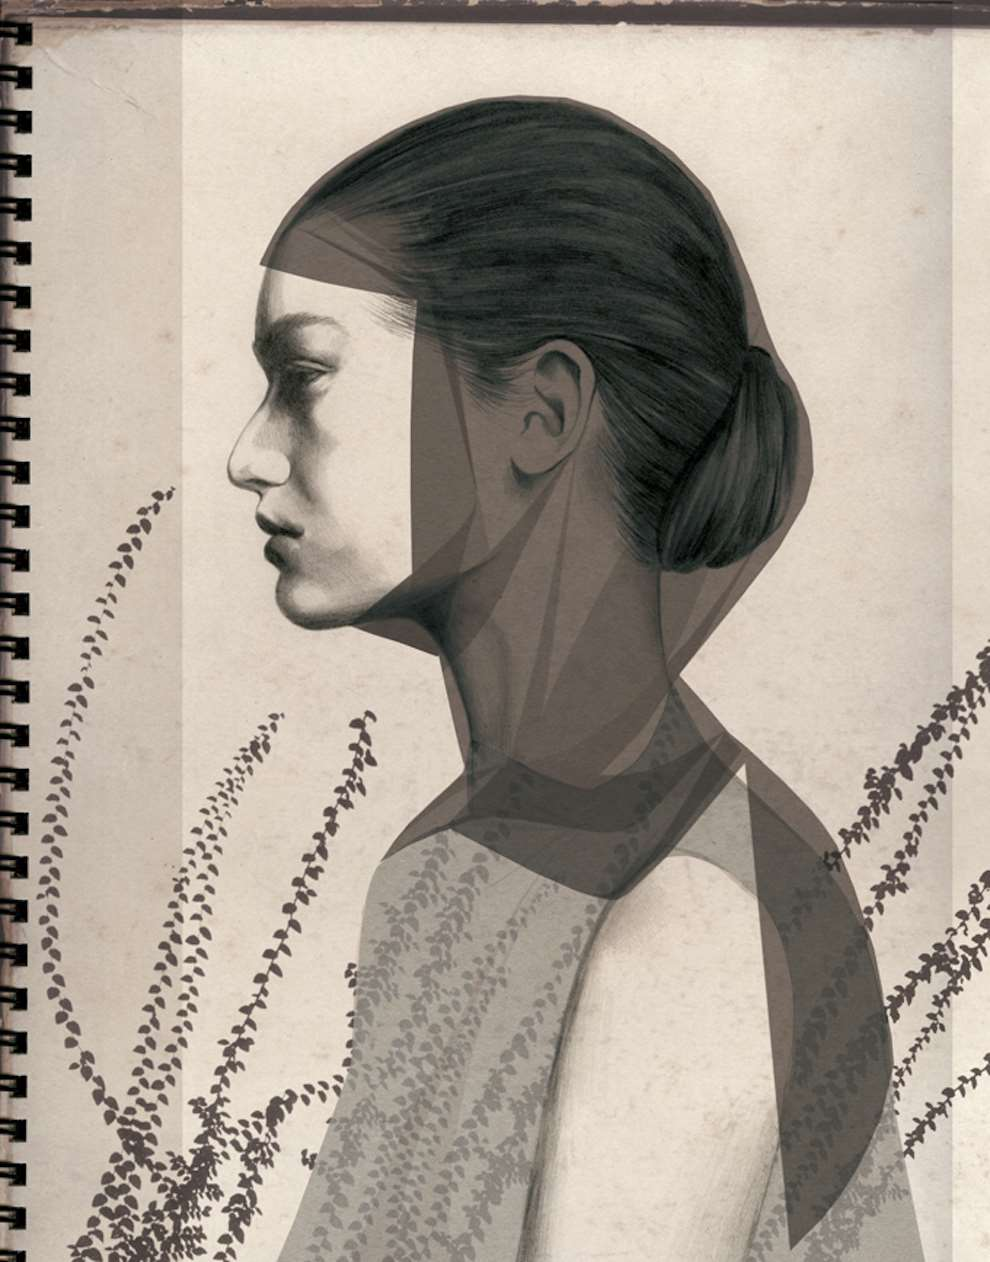 Montse Bernal, Pencil portrait of a lady side profile. Detailed cross hatching and textural marks.